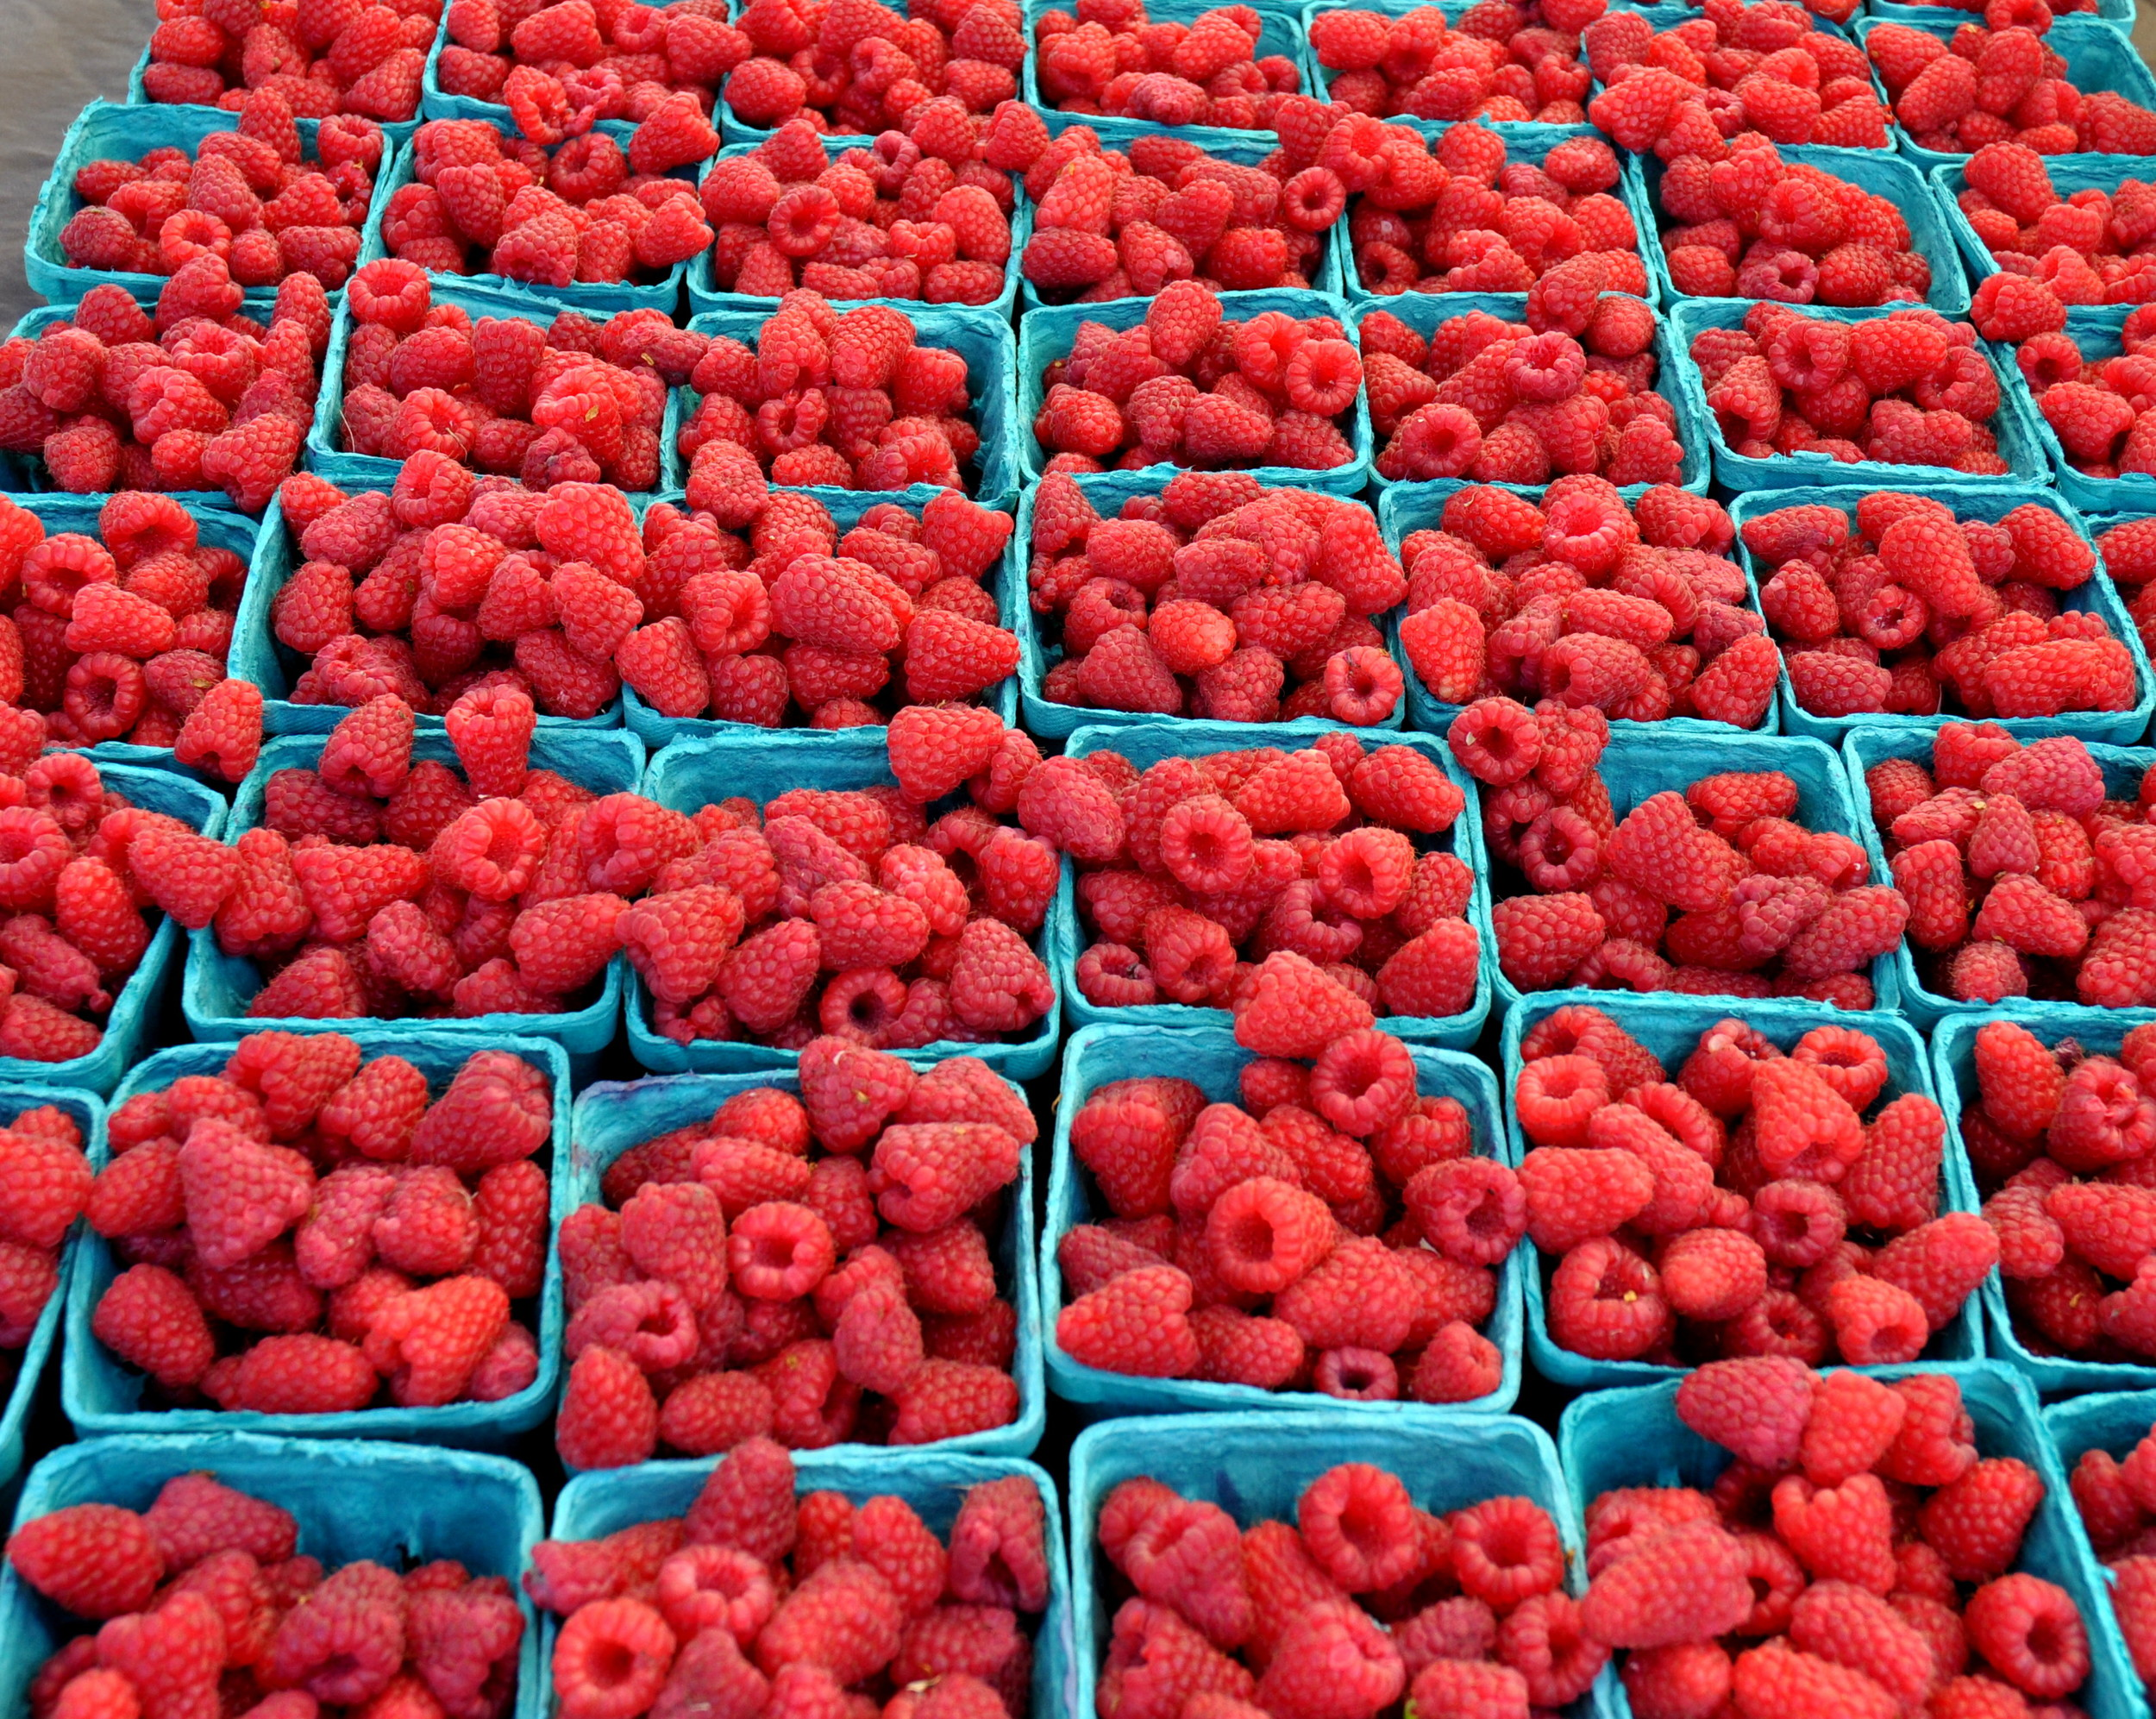 Raspberries from Alm Hill Gardens. Photo copyright 2013 by Zachary D. Lyons.